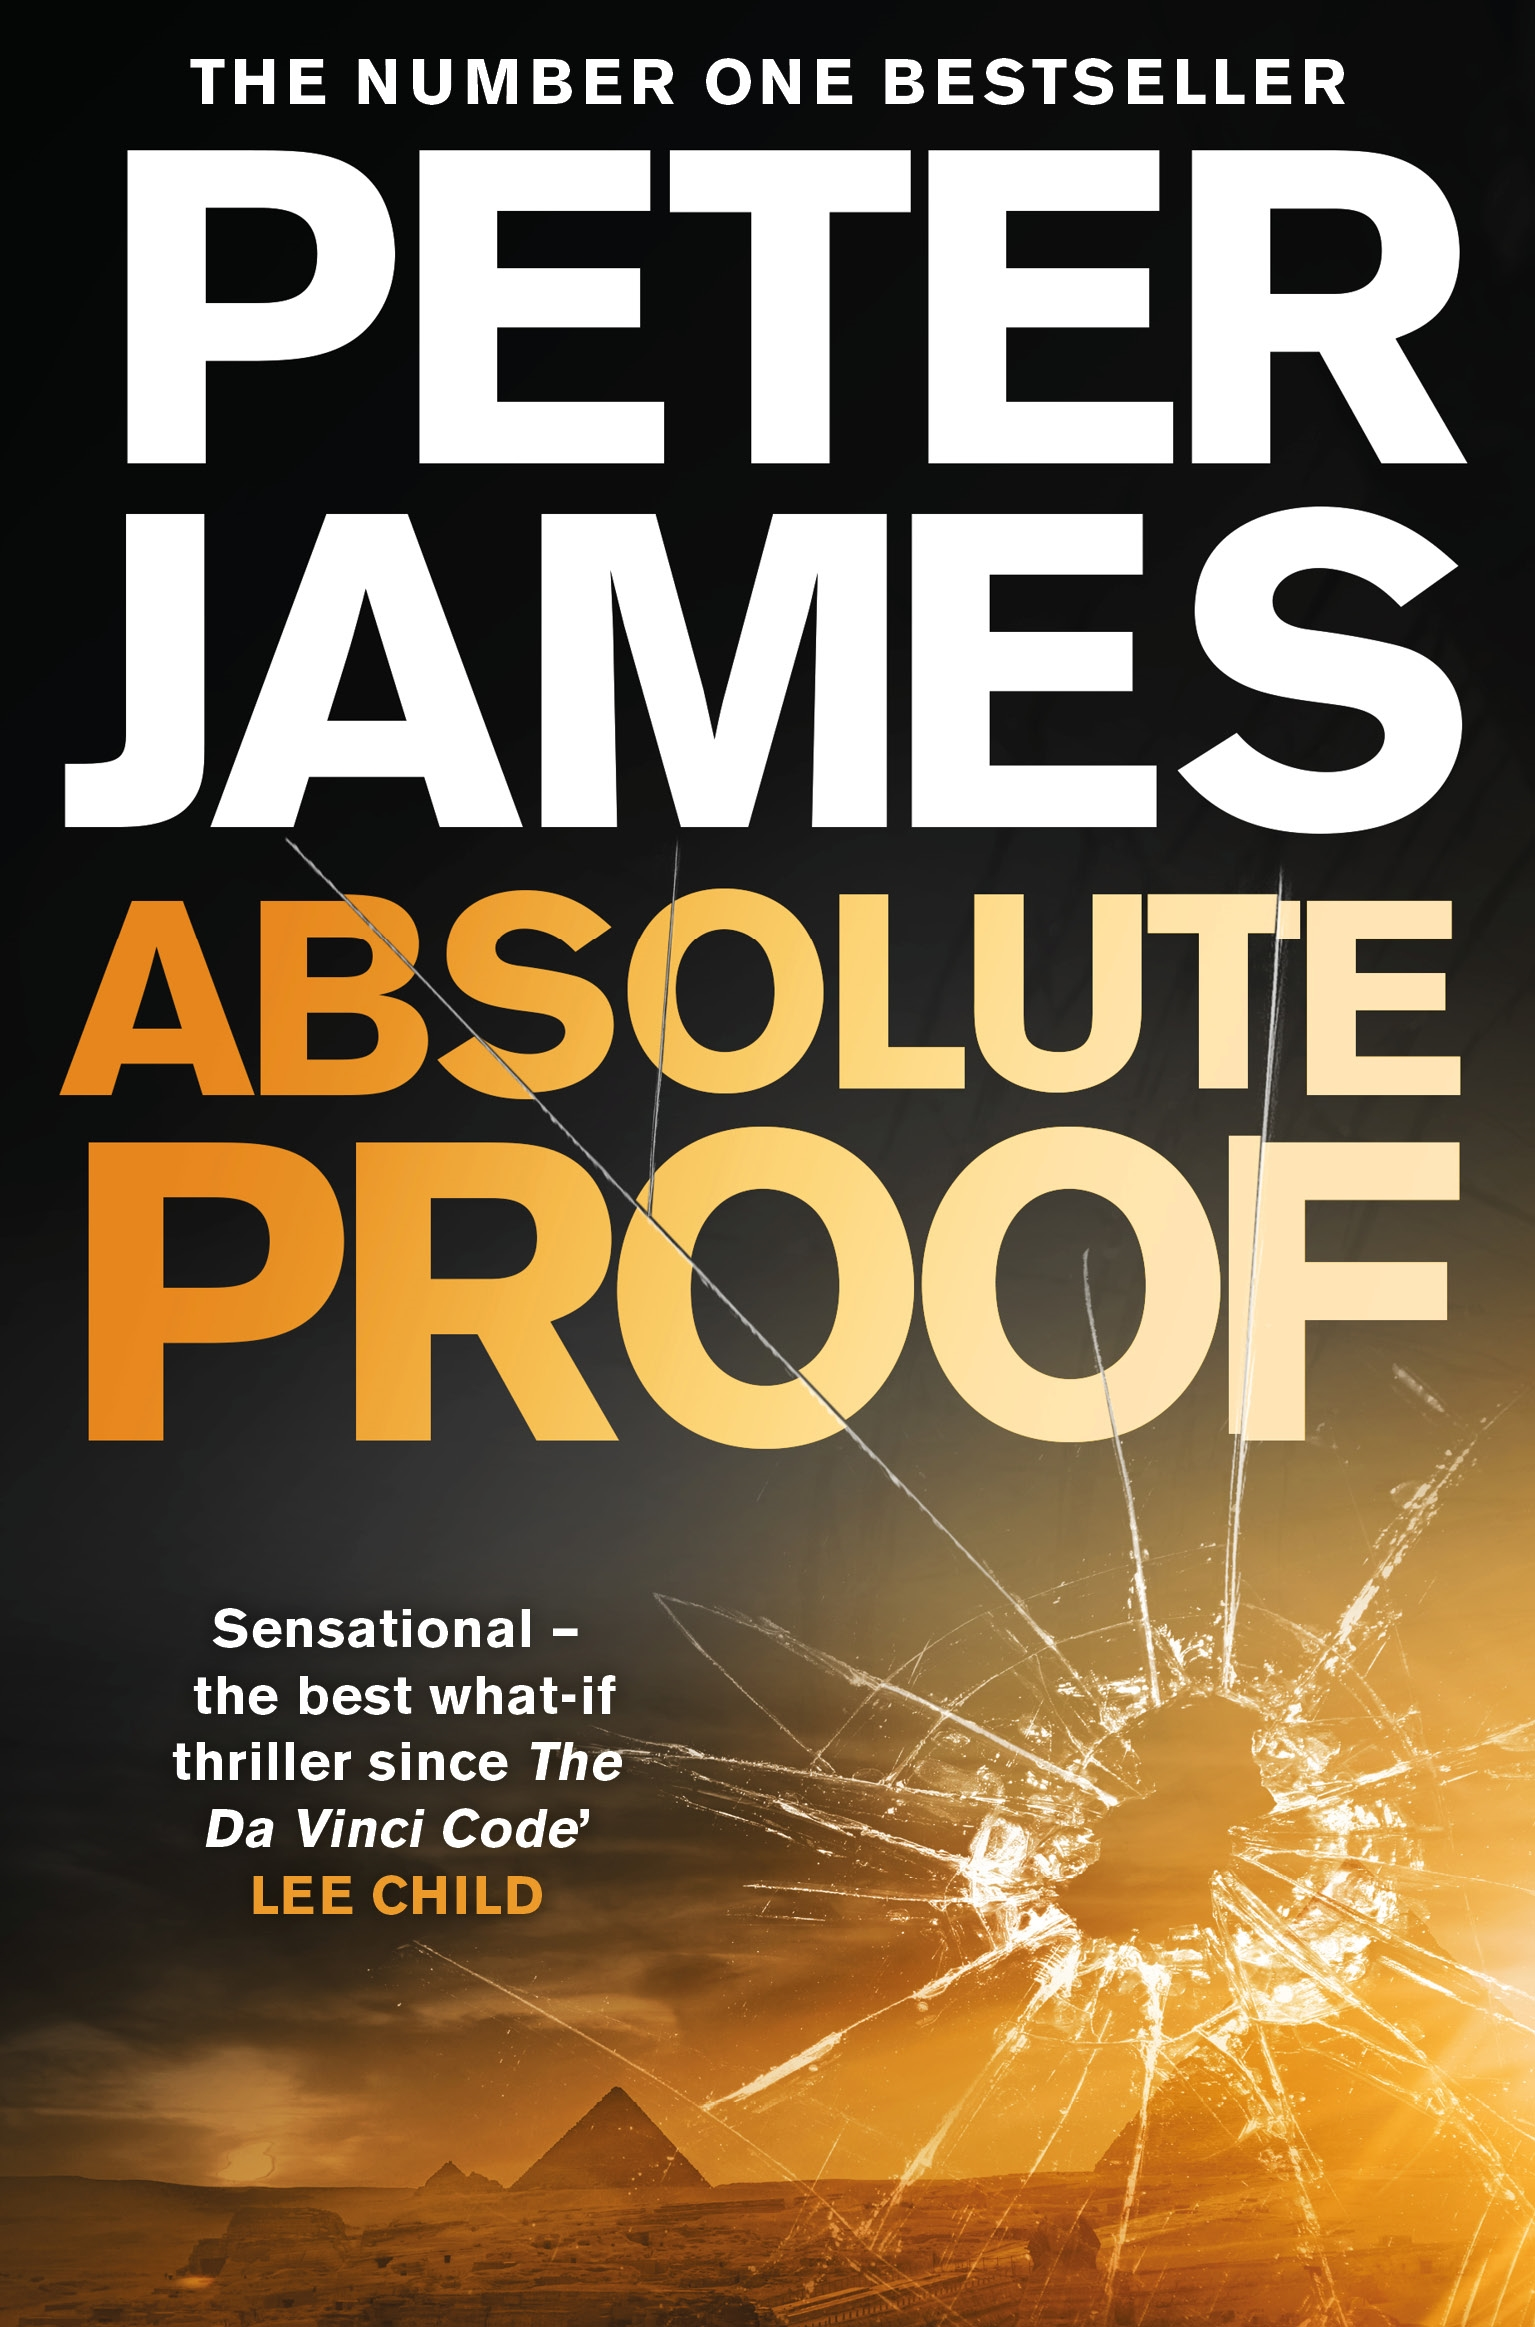 ABSOLUTE PROOF Paperback Cover.jpg